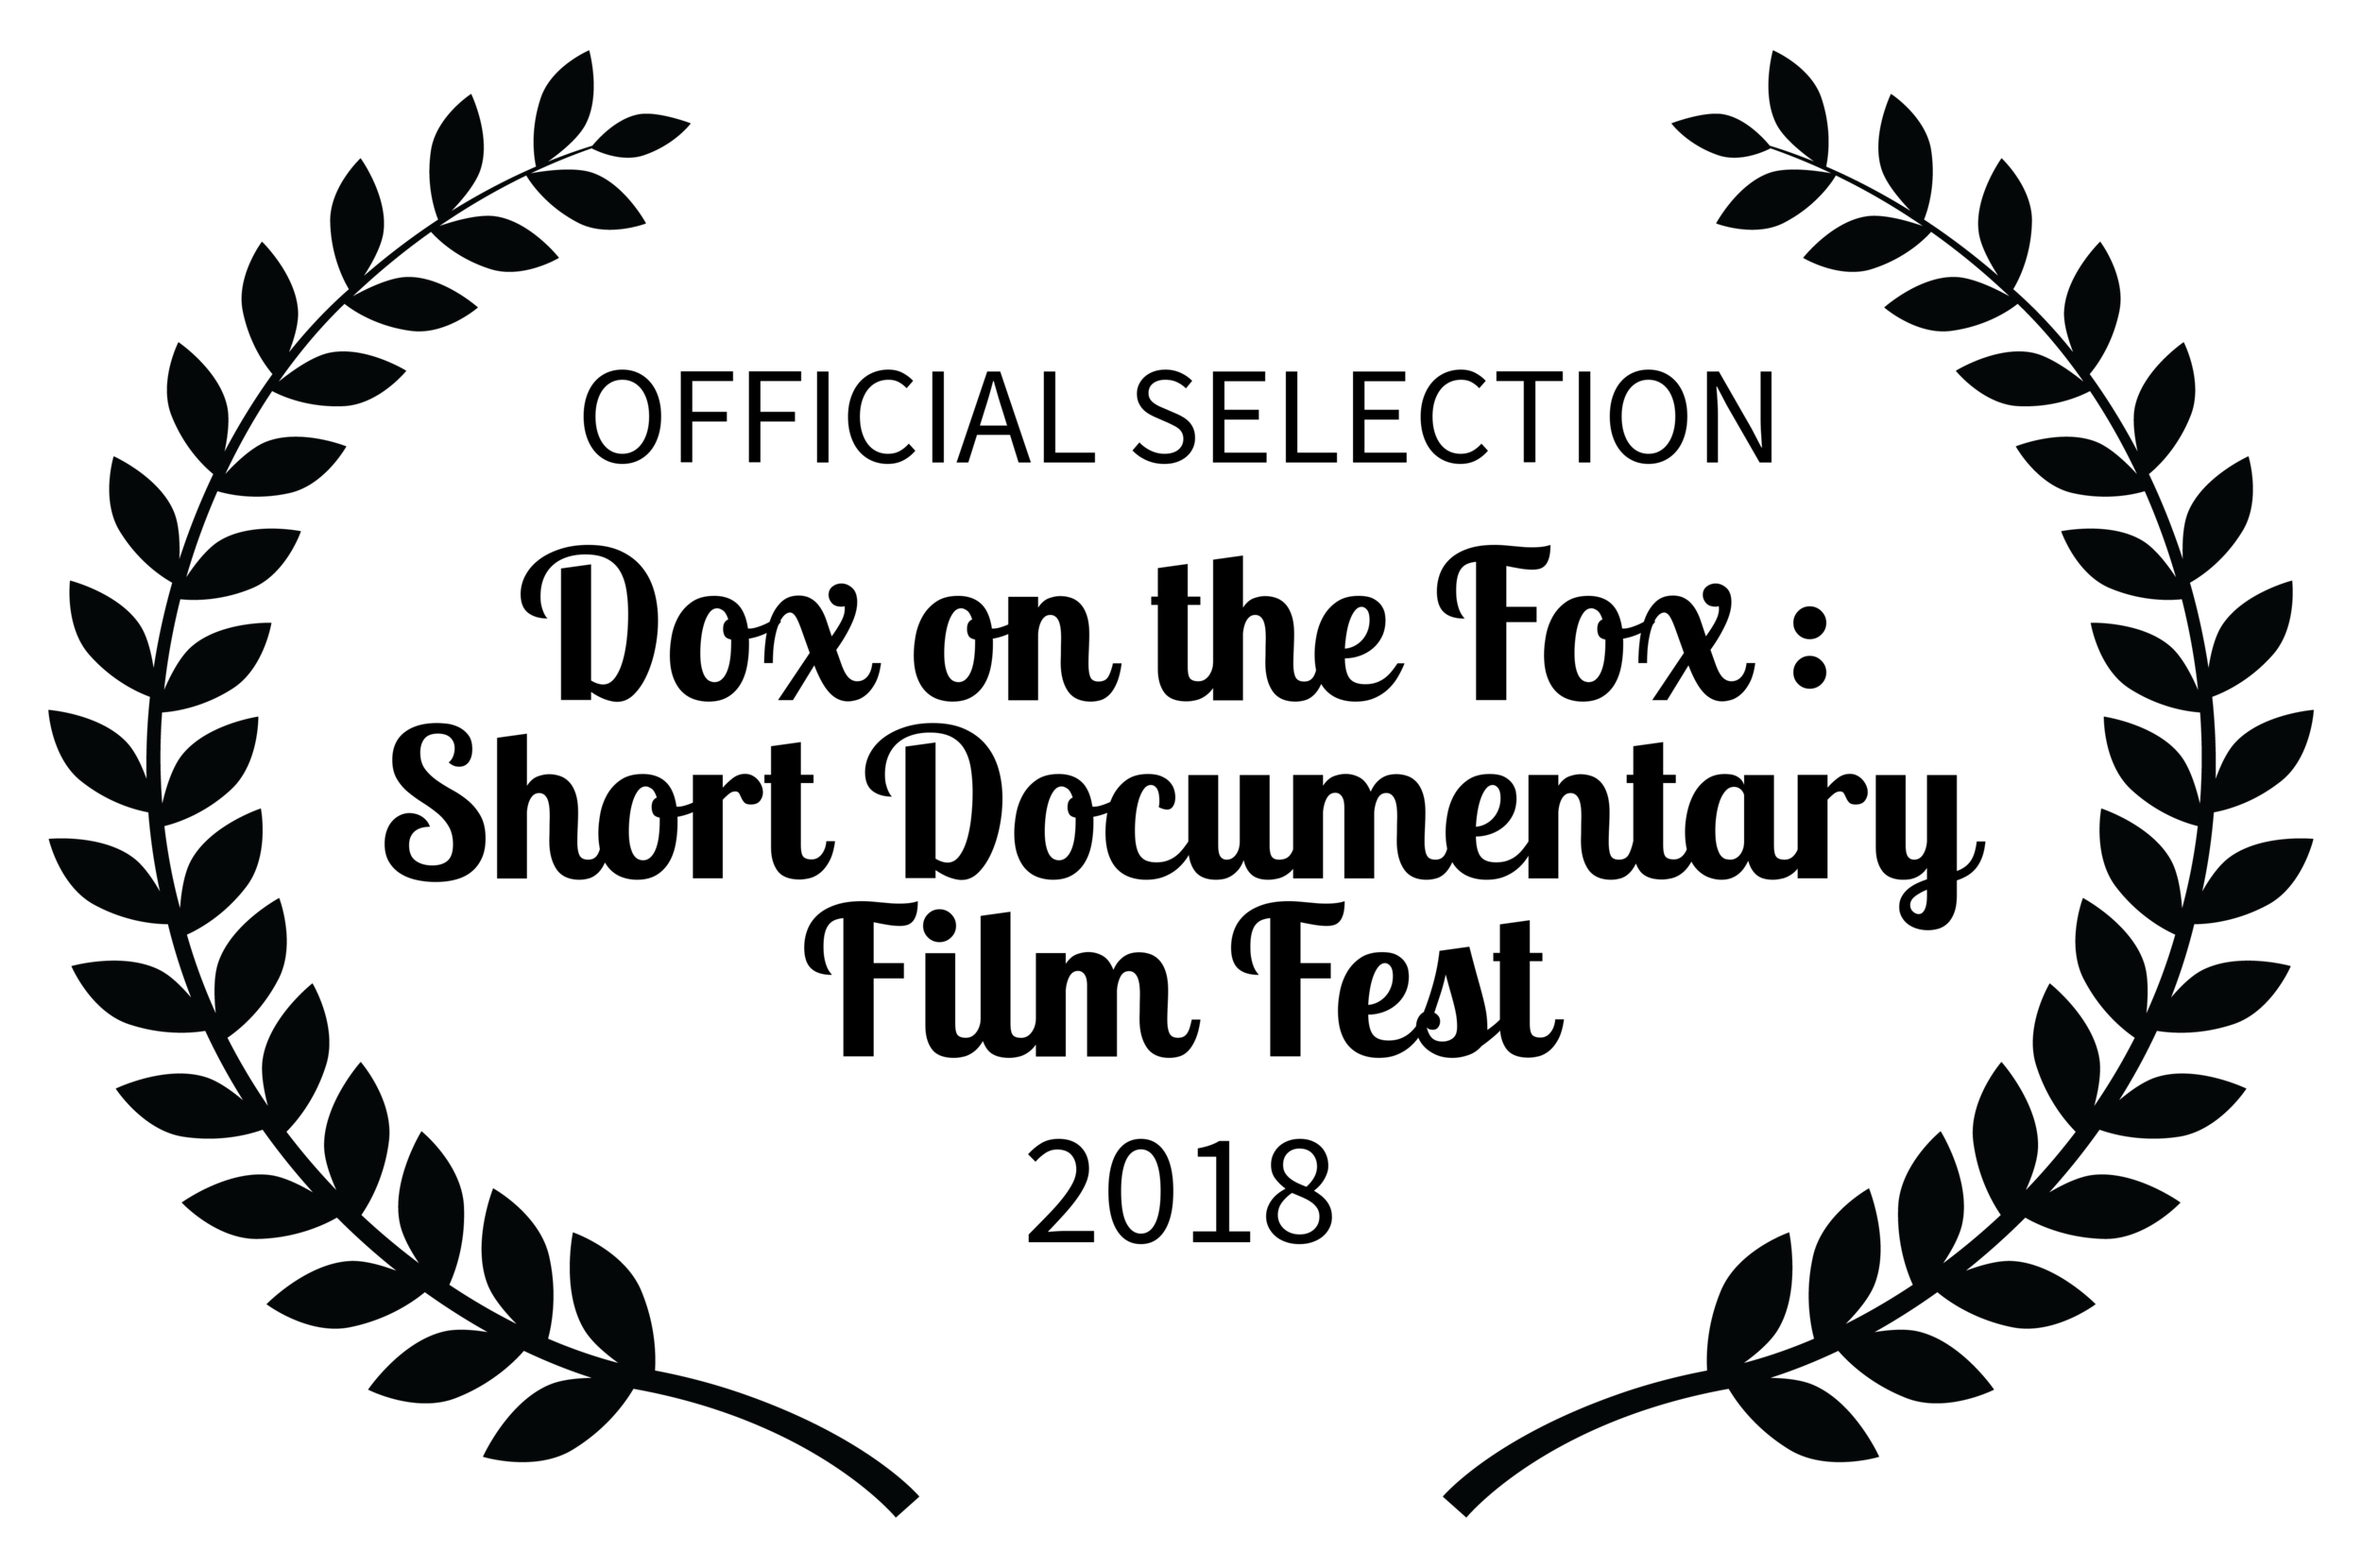 We've been selected! - Our documentary will be shown at the Dox on the Fox Film Fest on March 23rd at 6:30pm and March 24th at 10am. We're honored to take part.Get your tickets here!